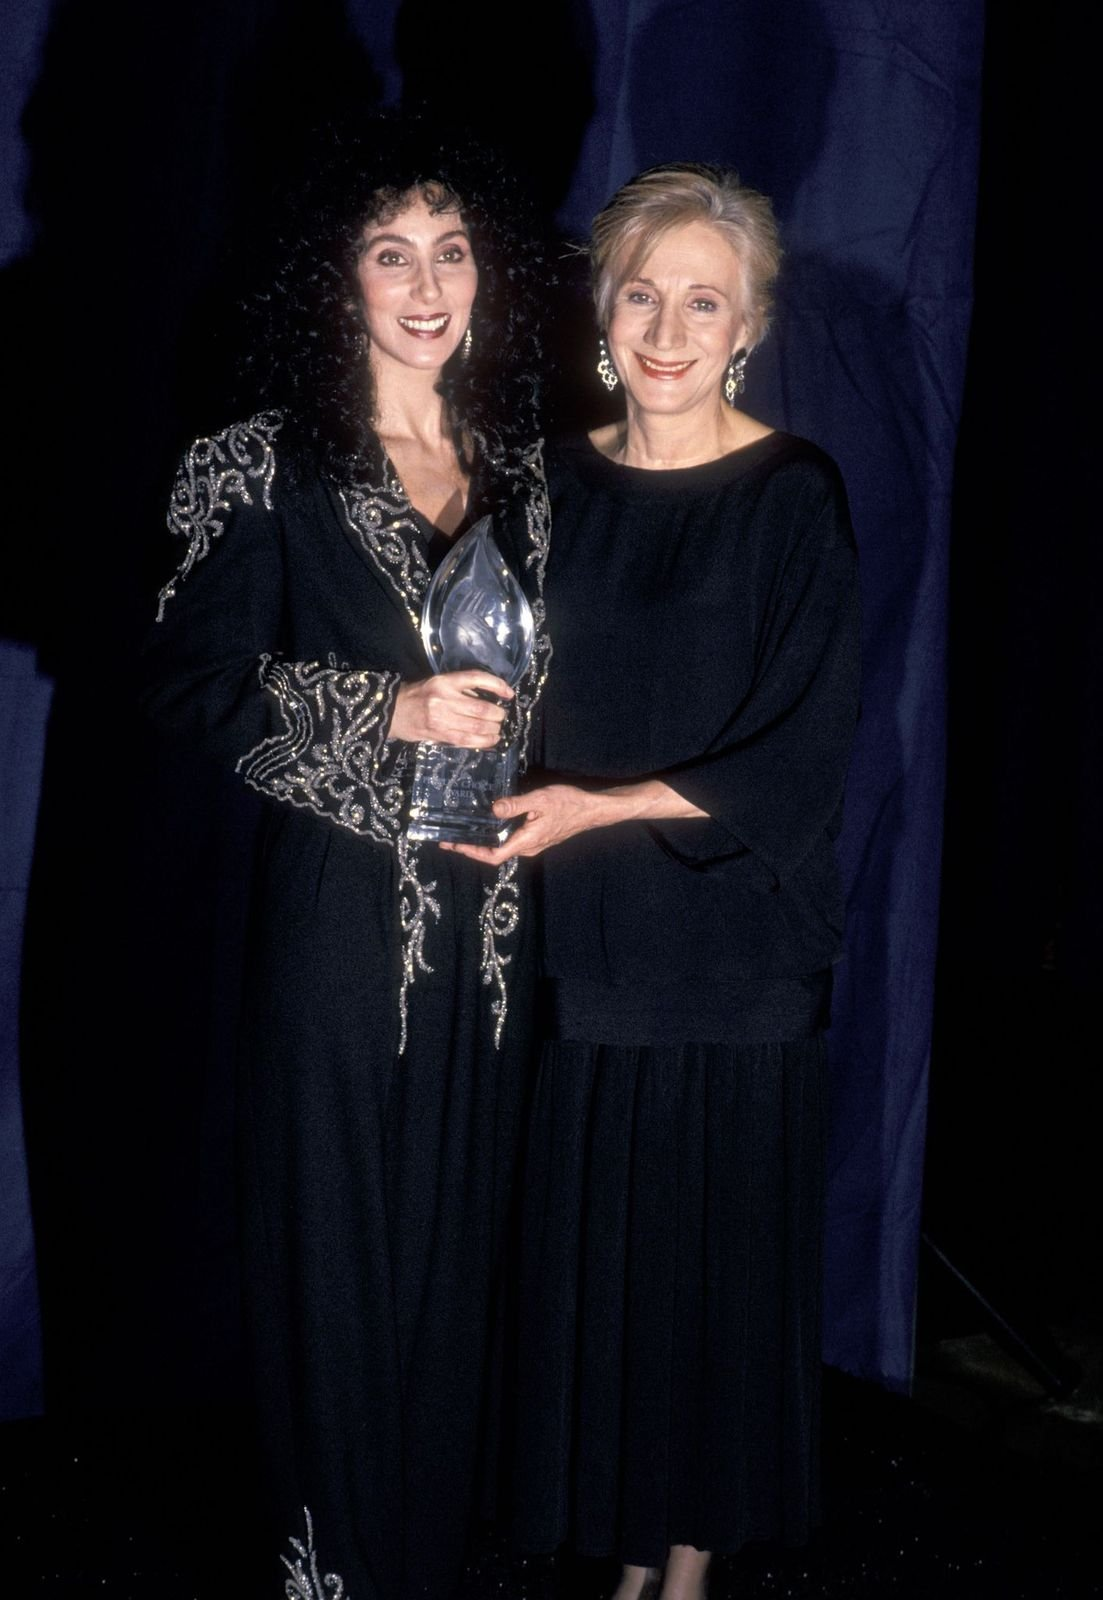 Cher and Olympia Dukakis at the 15th Annual People's Choice Awards on March 12, 1989. | Getty Images